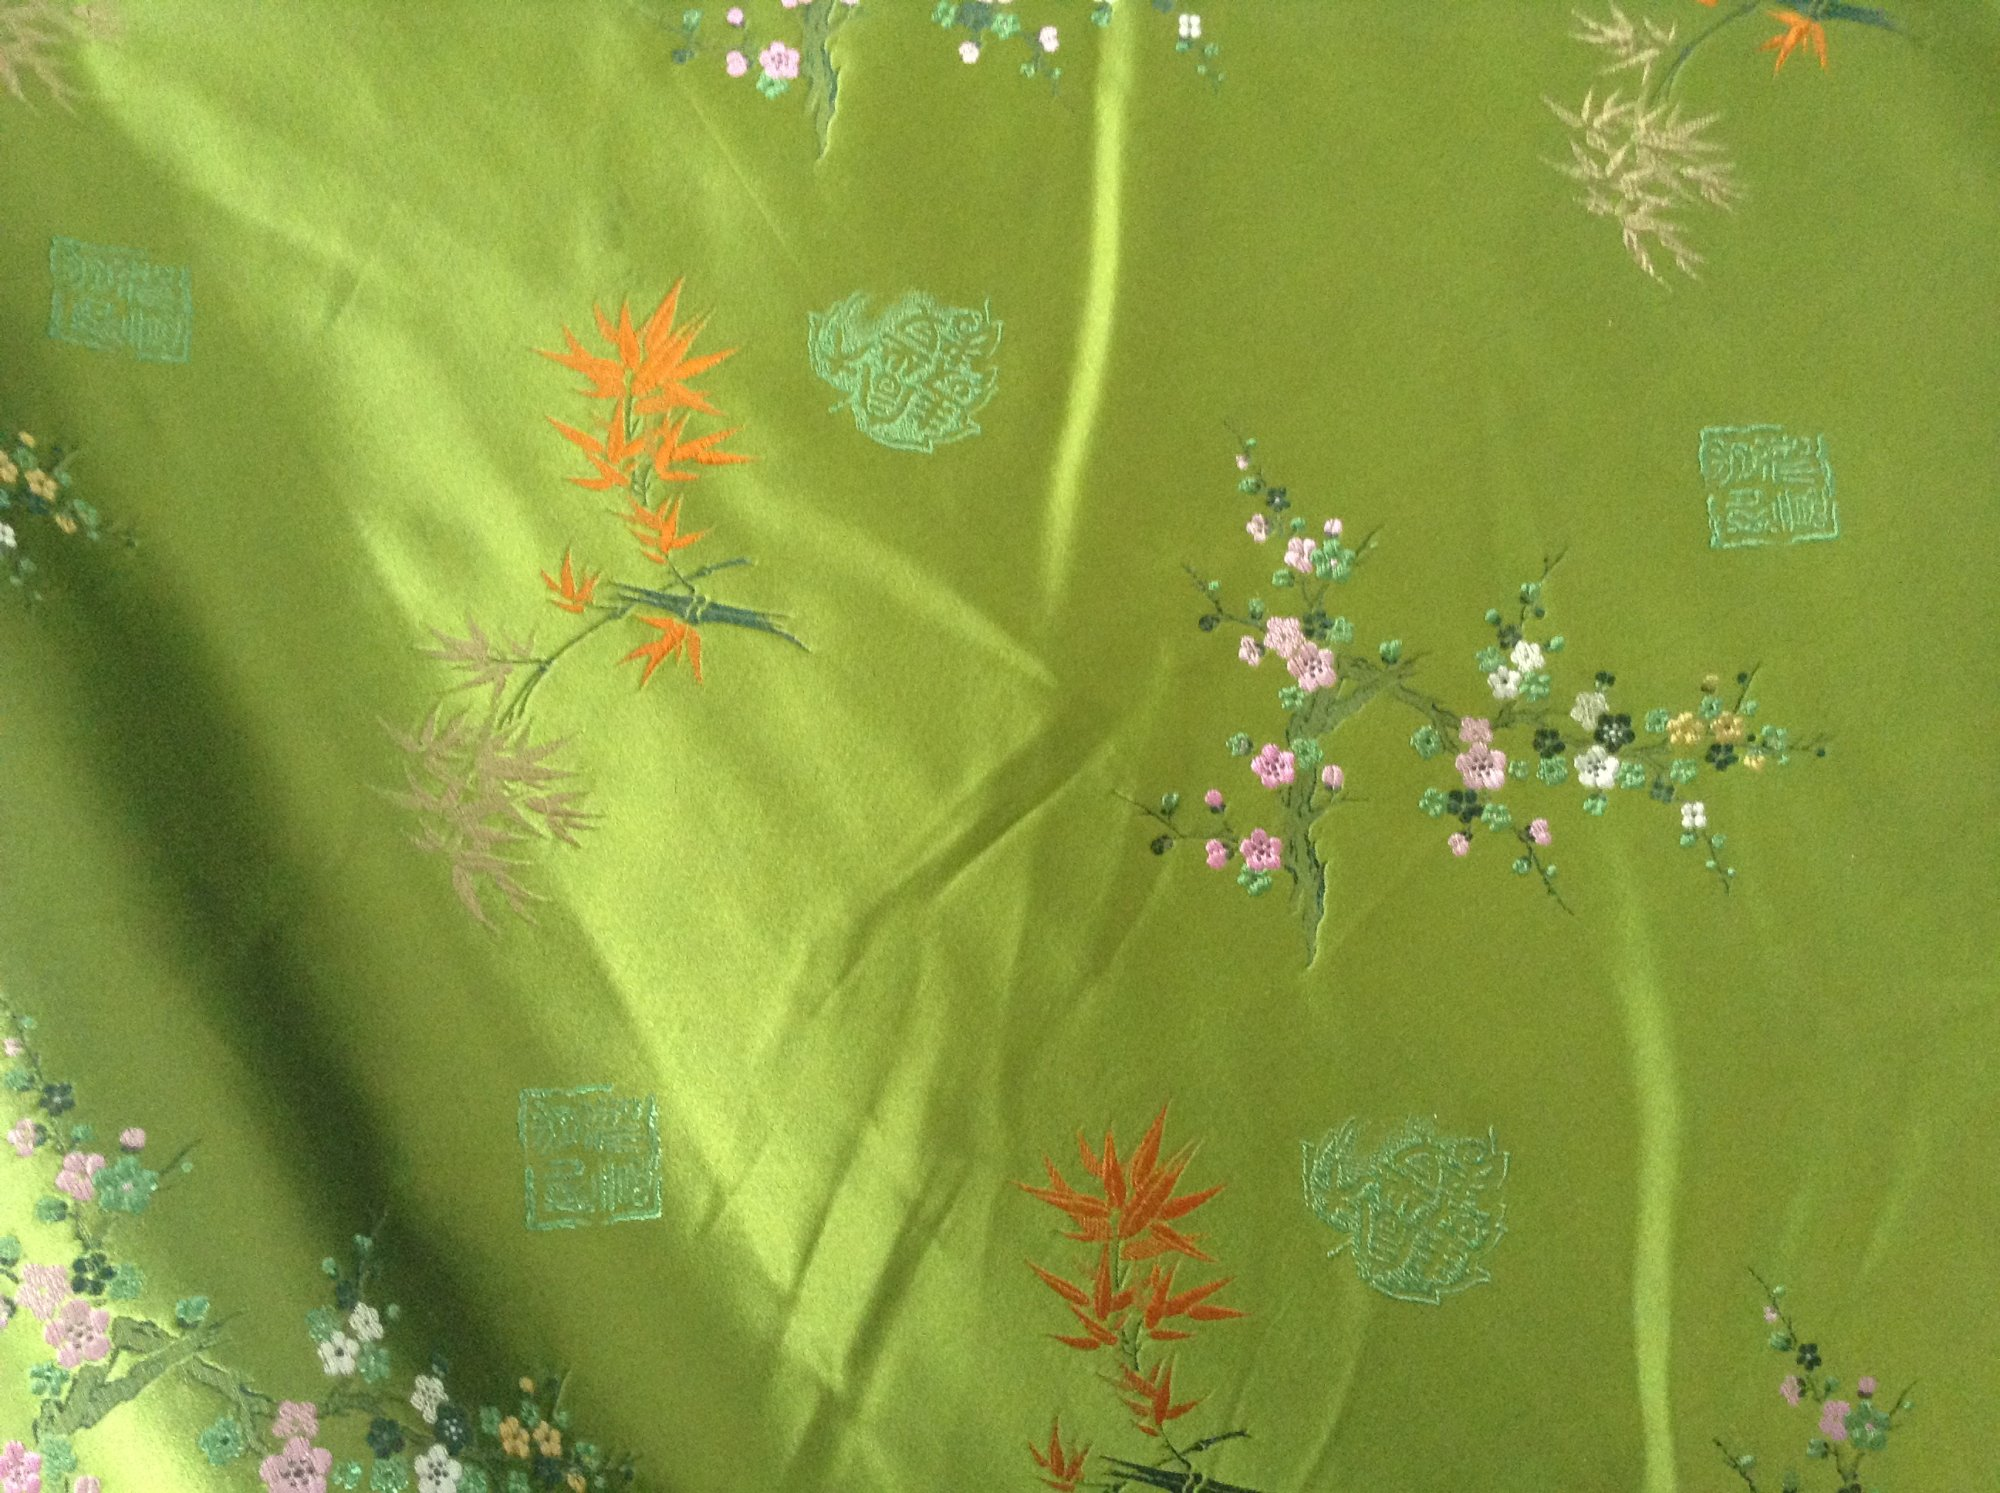 Brocade, silk satin, embroidered, green